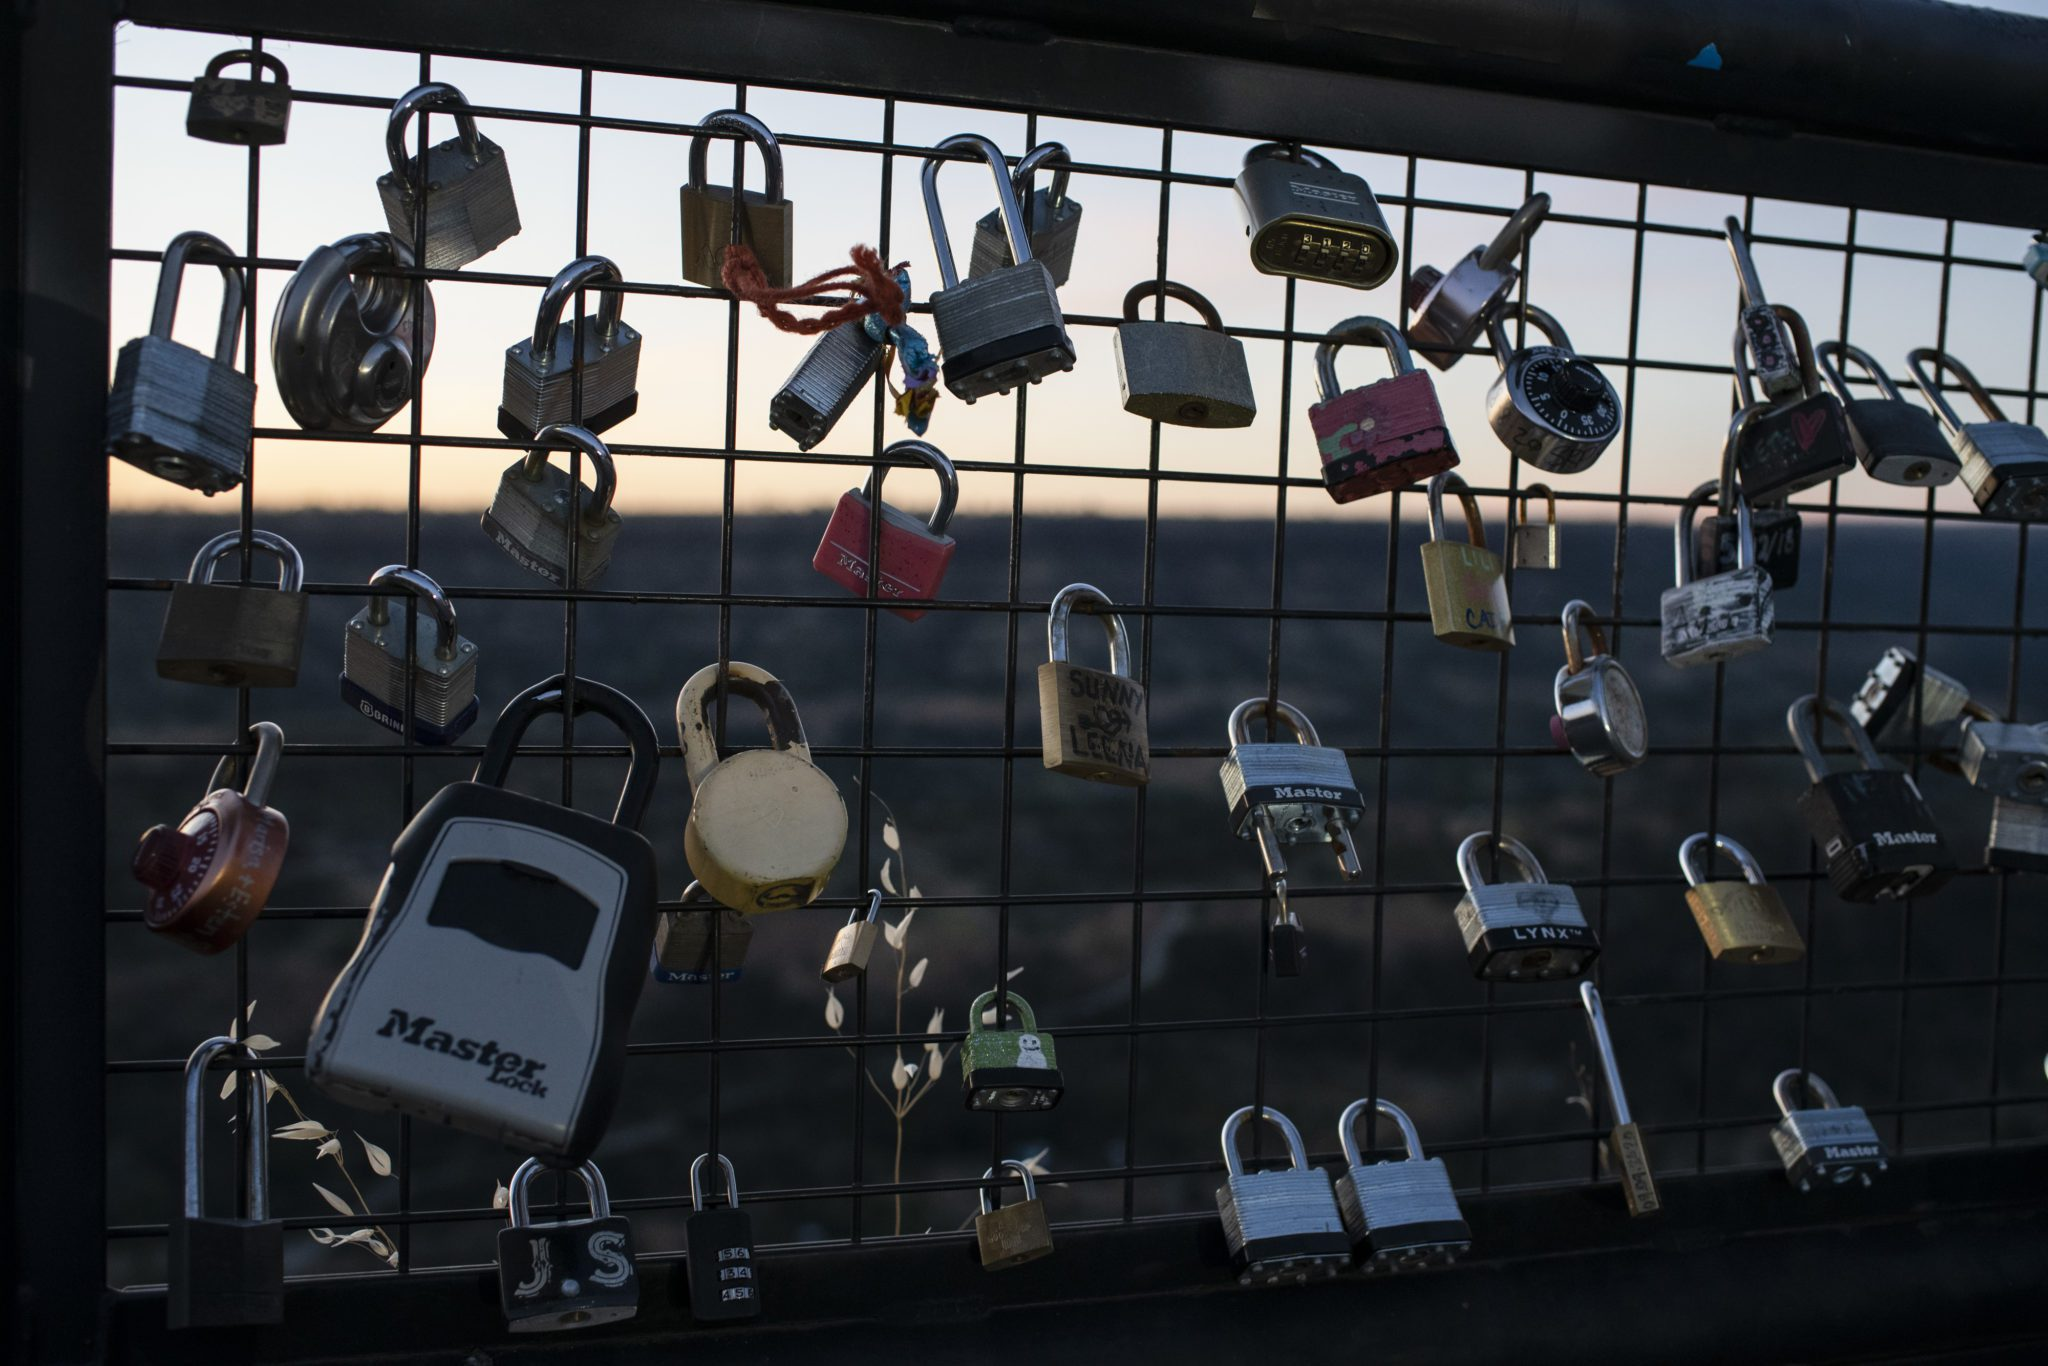 Locks line the fence at Lookout Point on the Skyway overlooking Butte Creek Canyon just outside Chico, Calif. on Tuesday May 4, 2021  Many people placed locks here in memory of people who died in the Camp Fire.  Salgu Wissmath for The Intercept